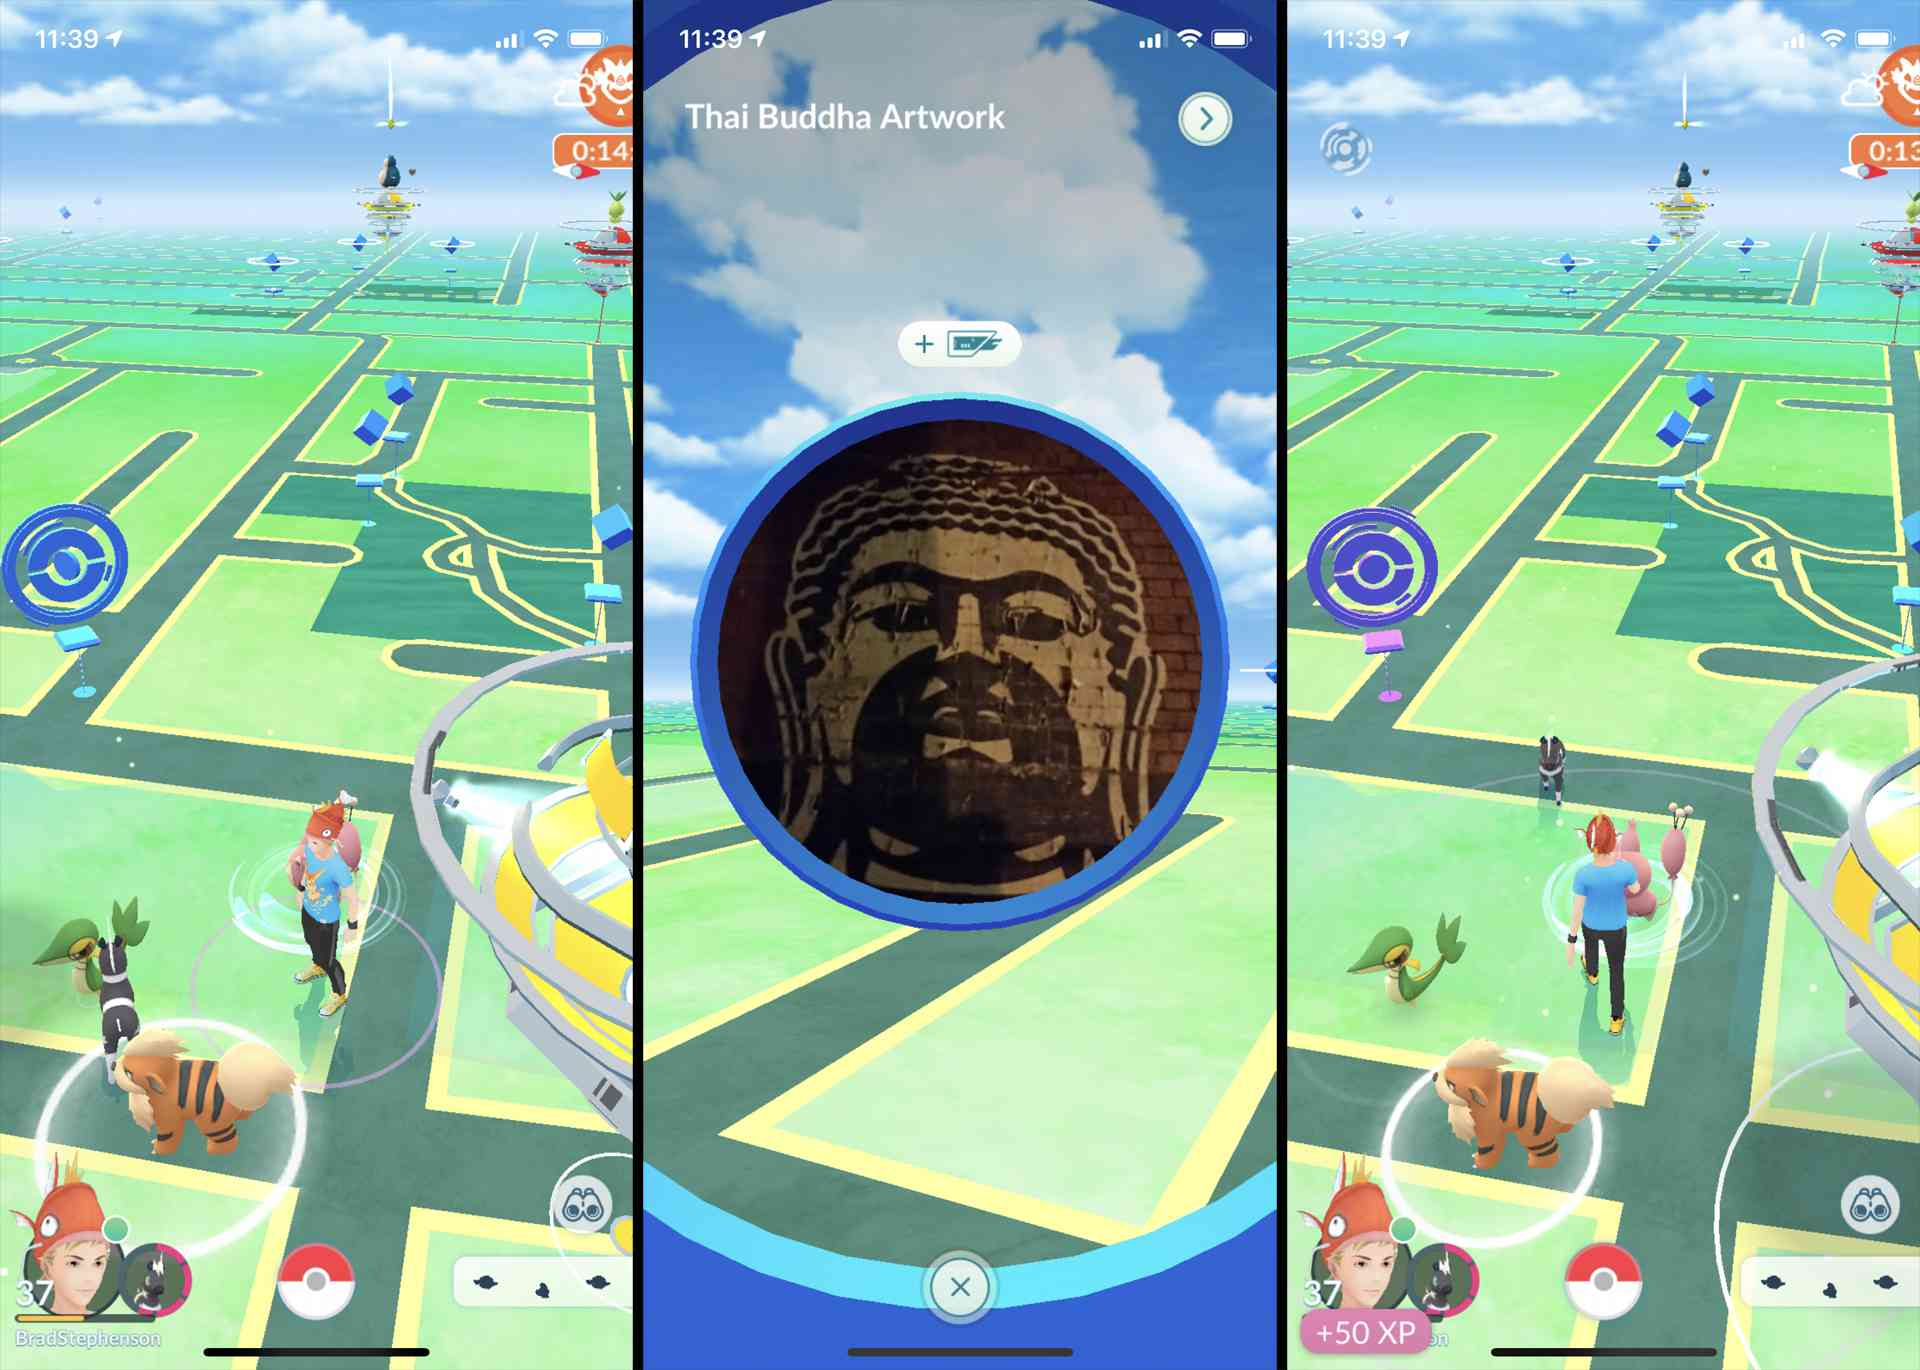 Screenshot of a Poke Stop in Melbourne, Australia in the Pokemon GO game on iPhone.